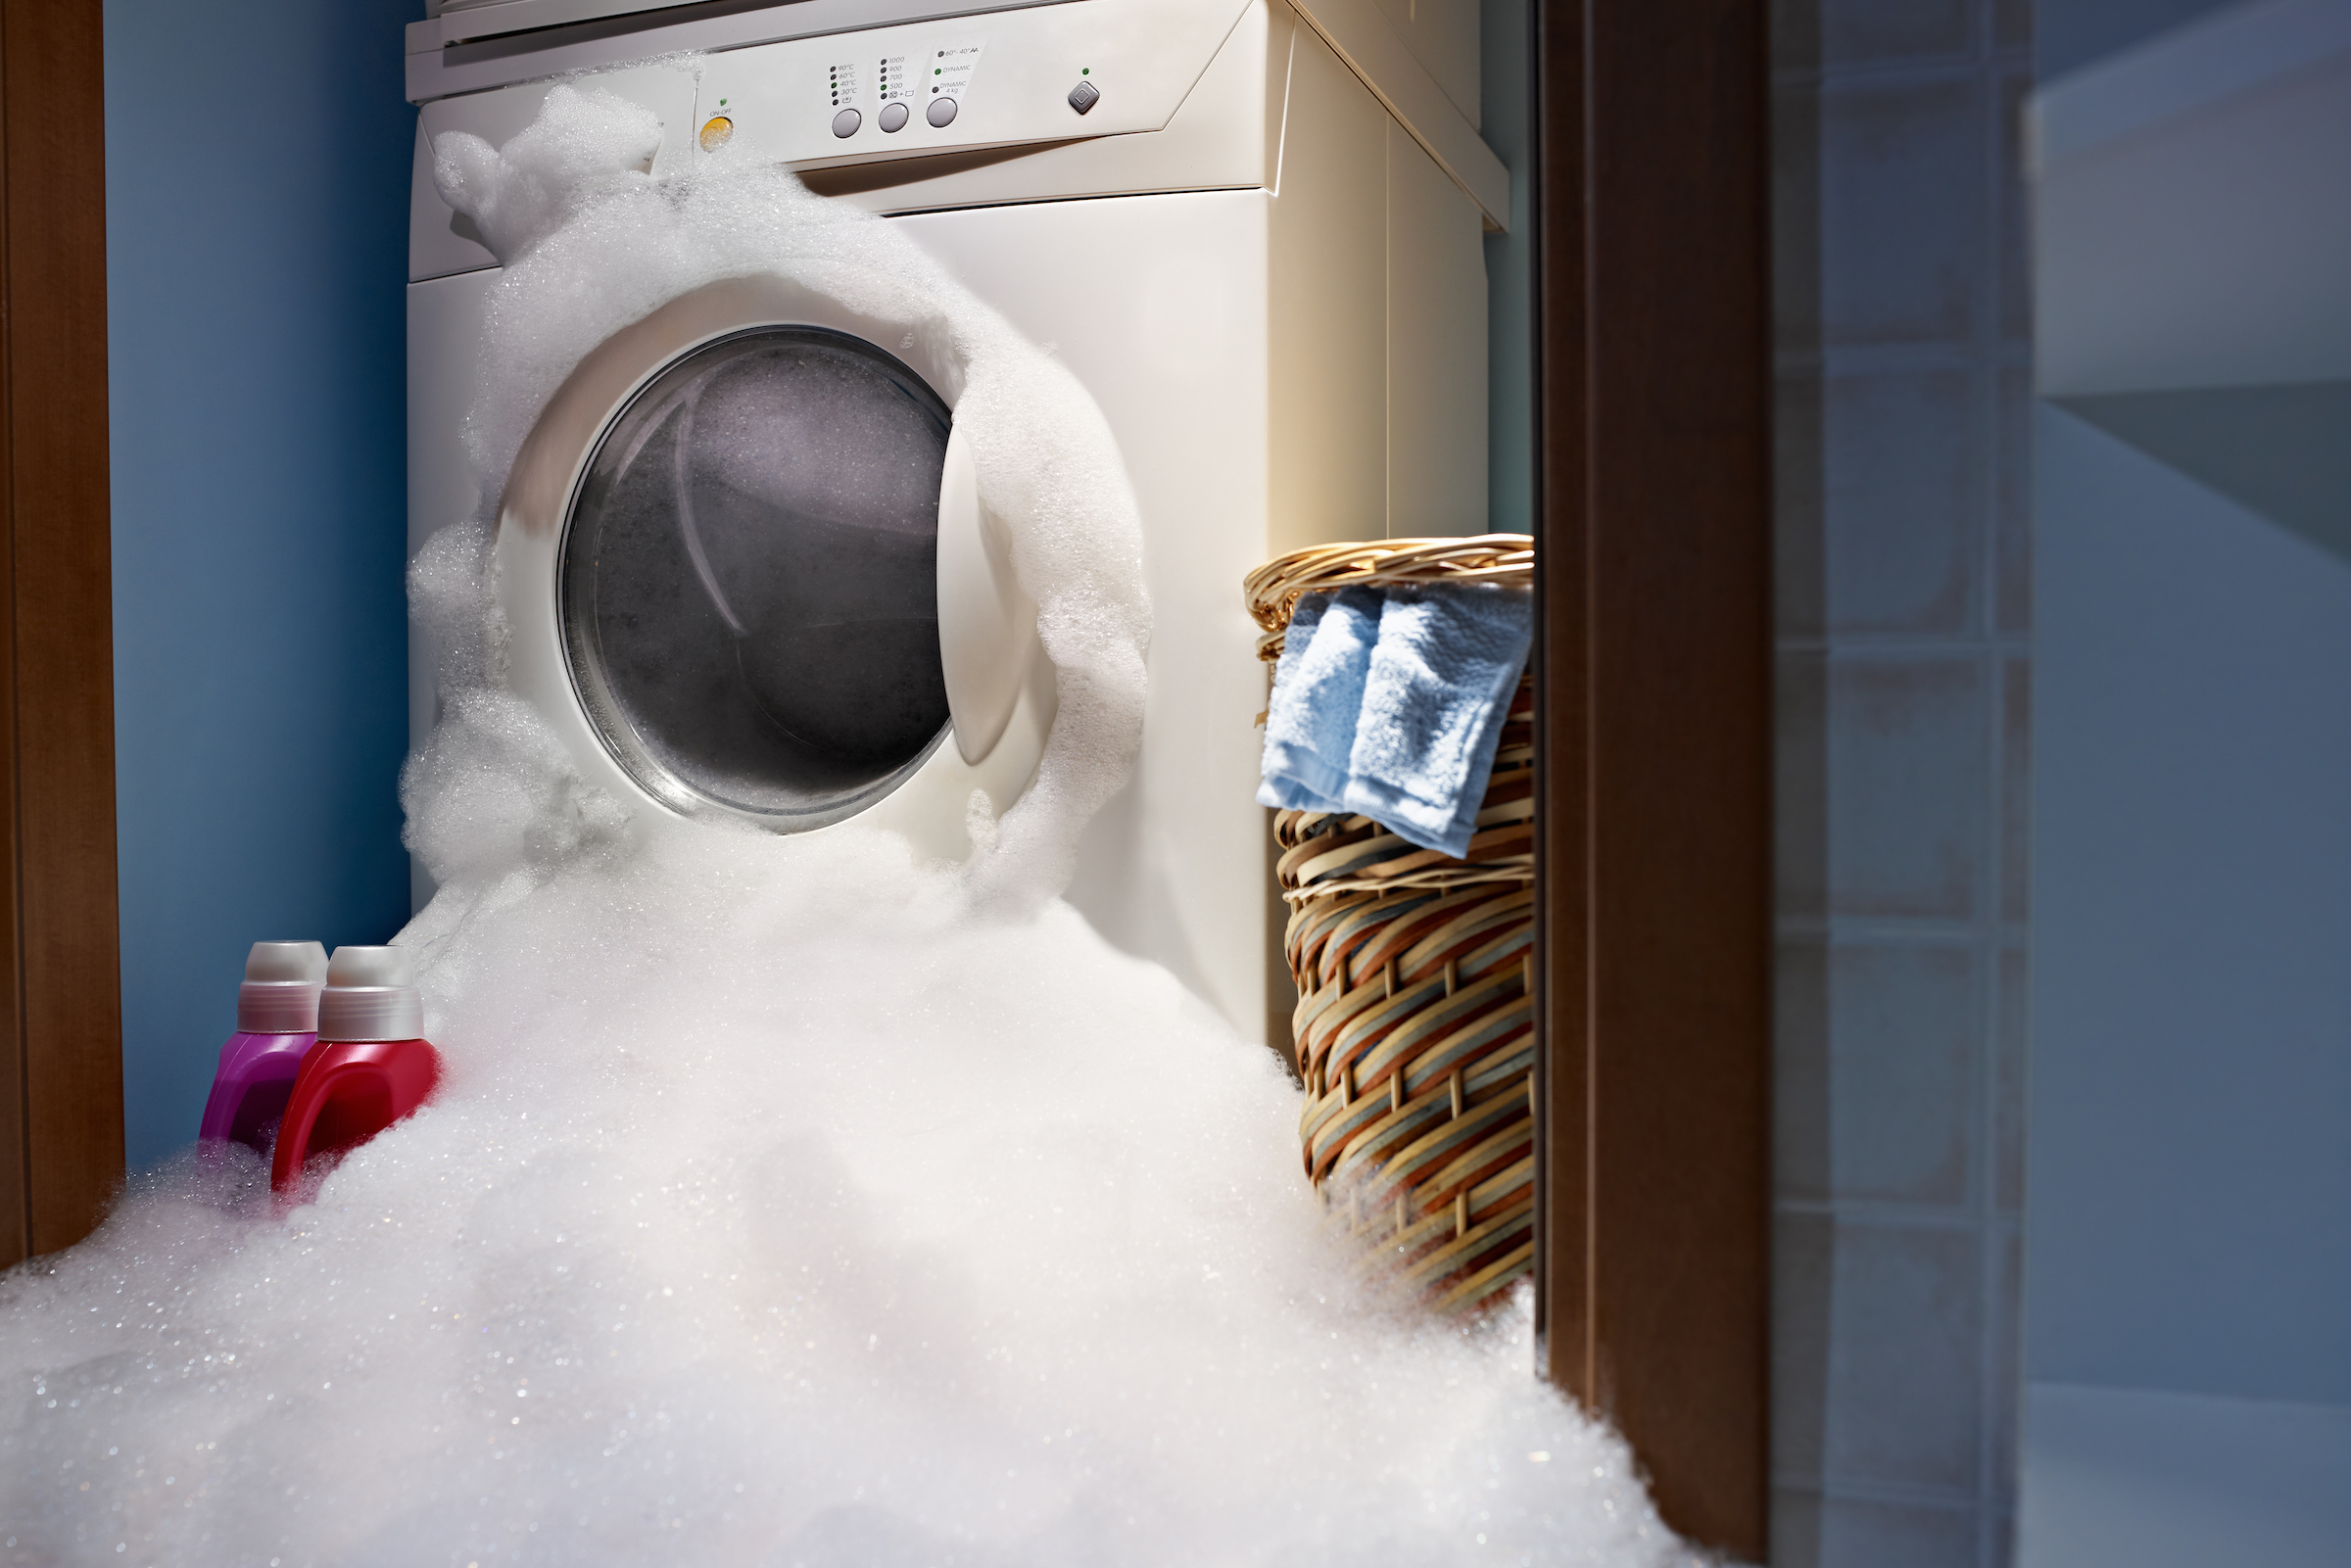 Washing machine overflowing? Clean up the mess before you assess the damage.